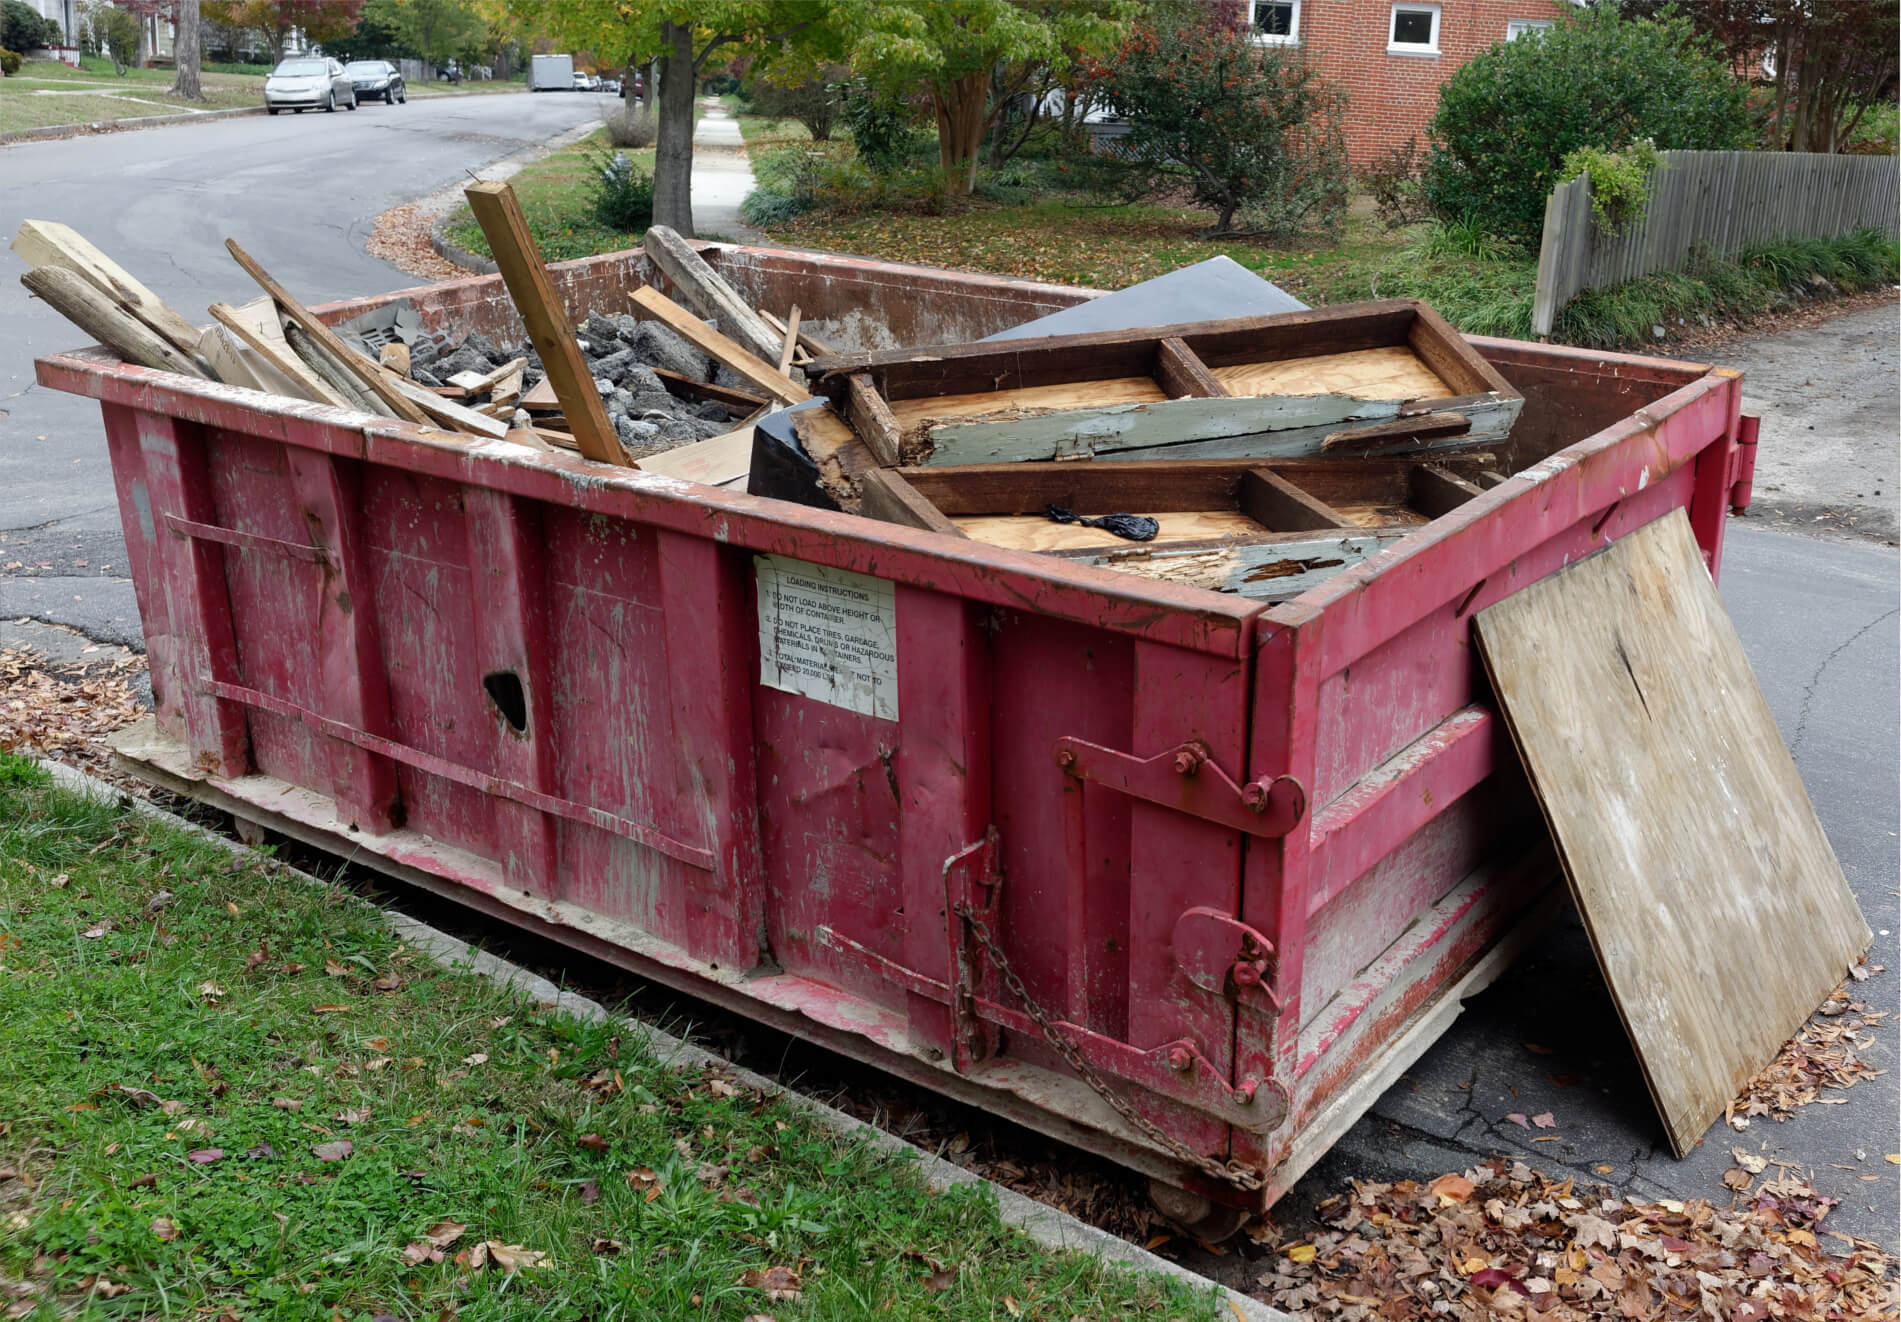 red dumpster on street